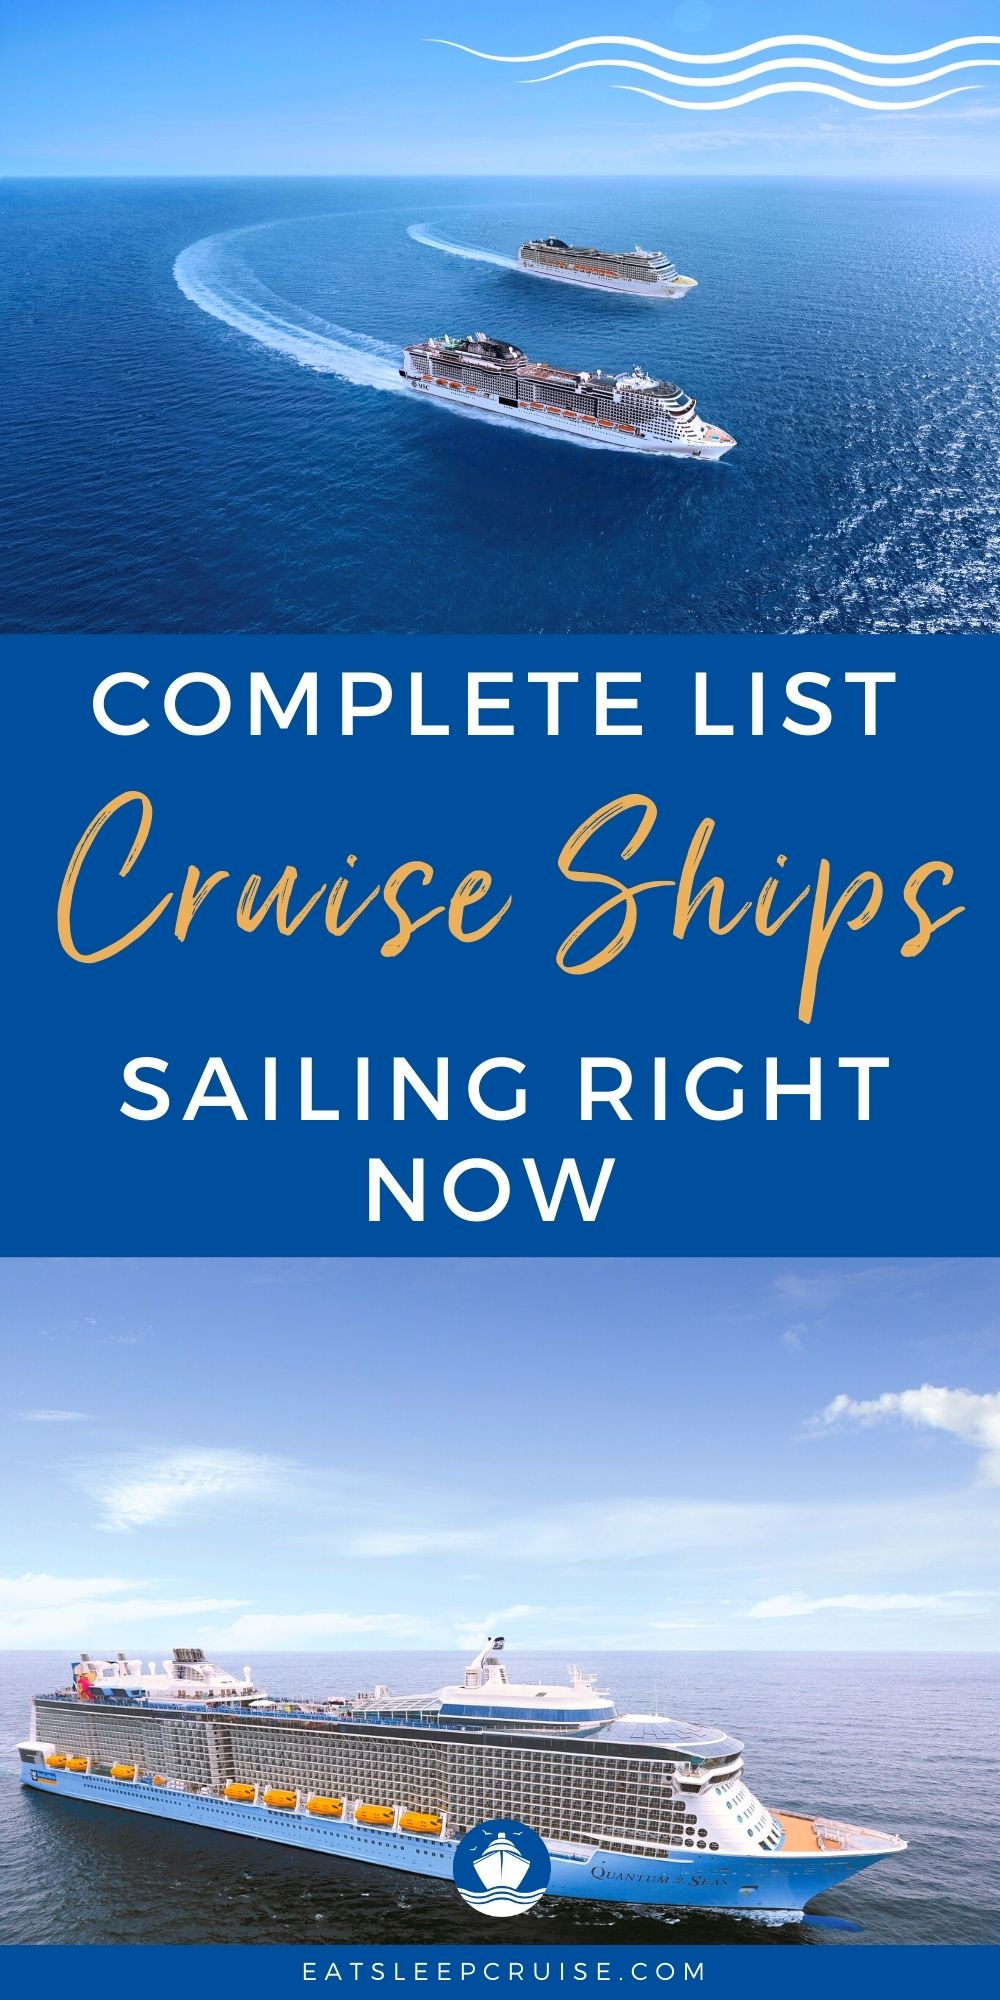 What Cruise Lines Are Sailing Right Now